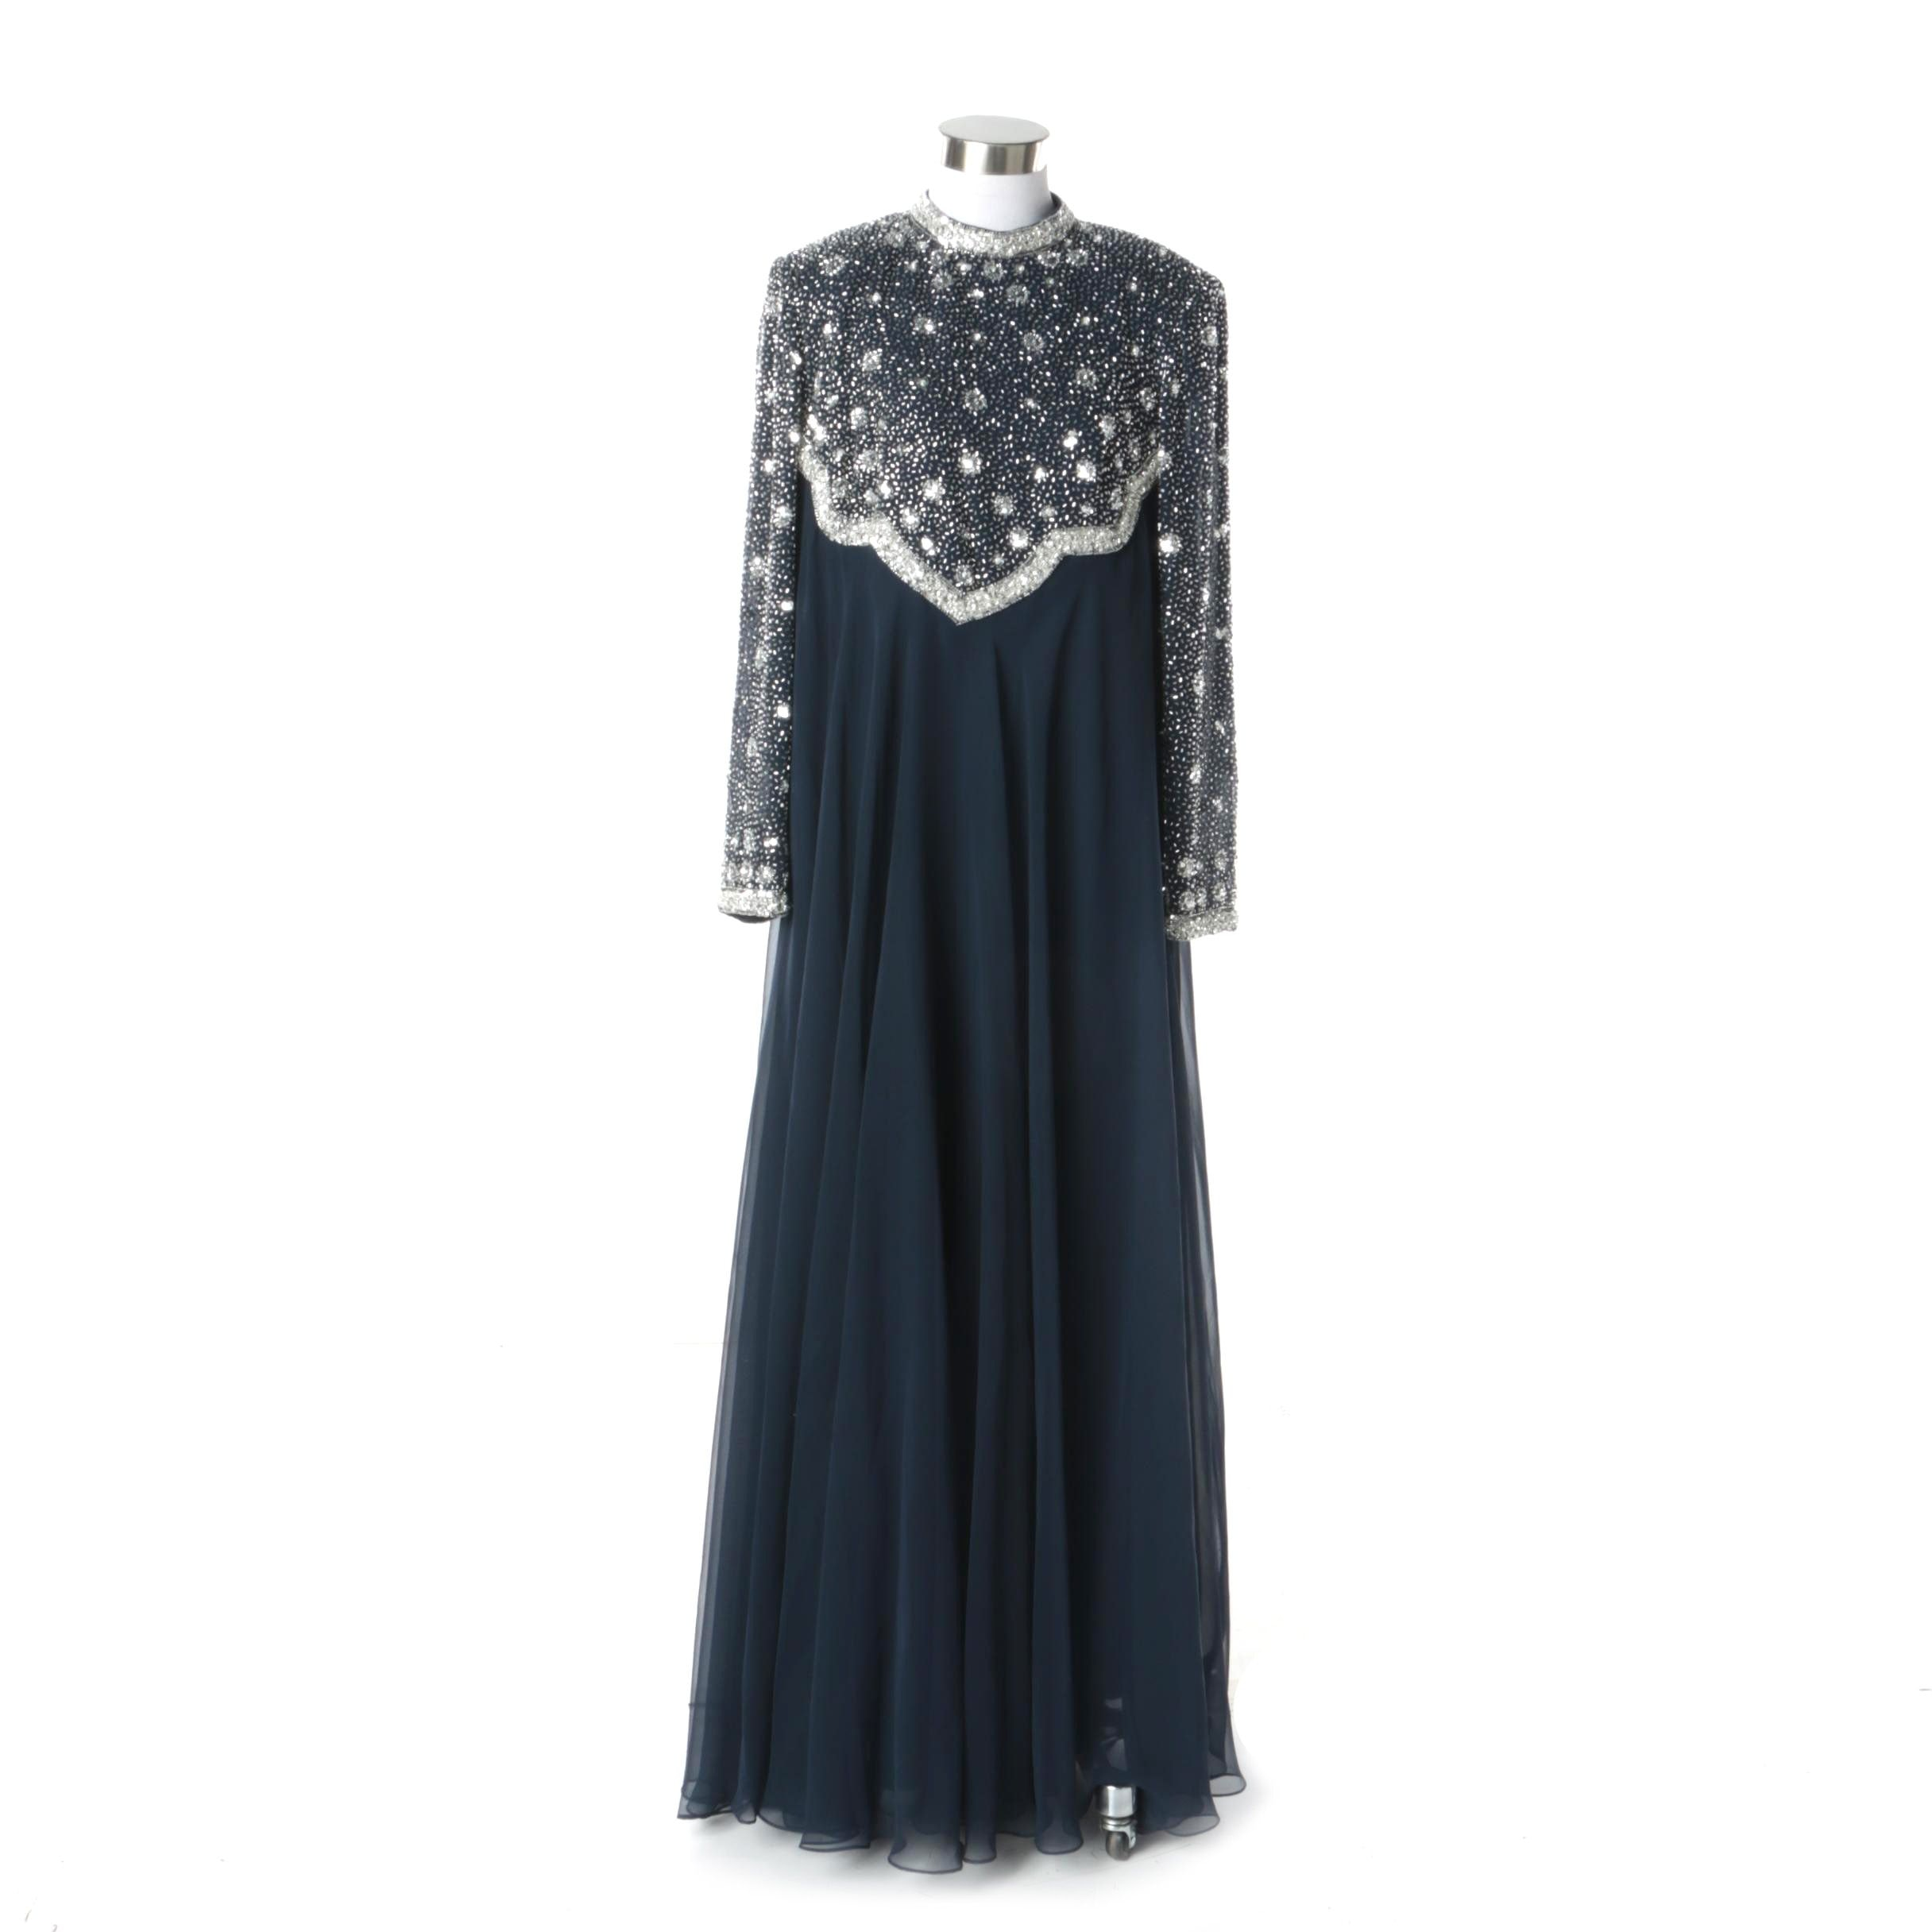 1980s George Allette Blue Silk Silver Beaded and Sequin Maxi Dress with Chiffon